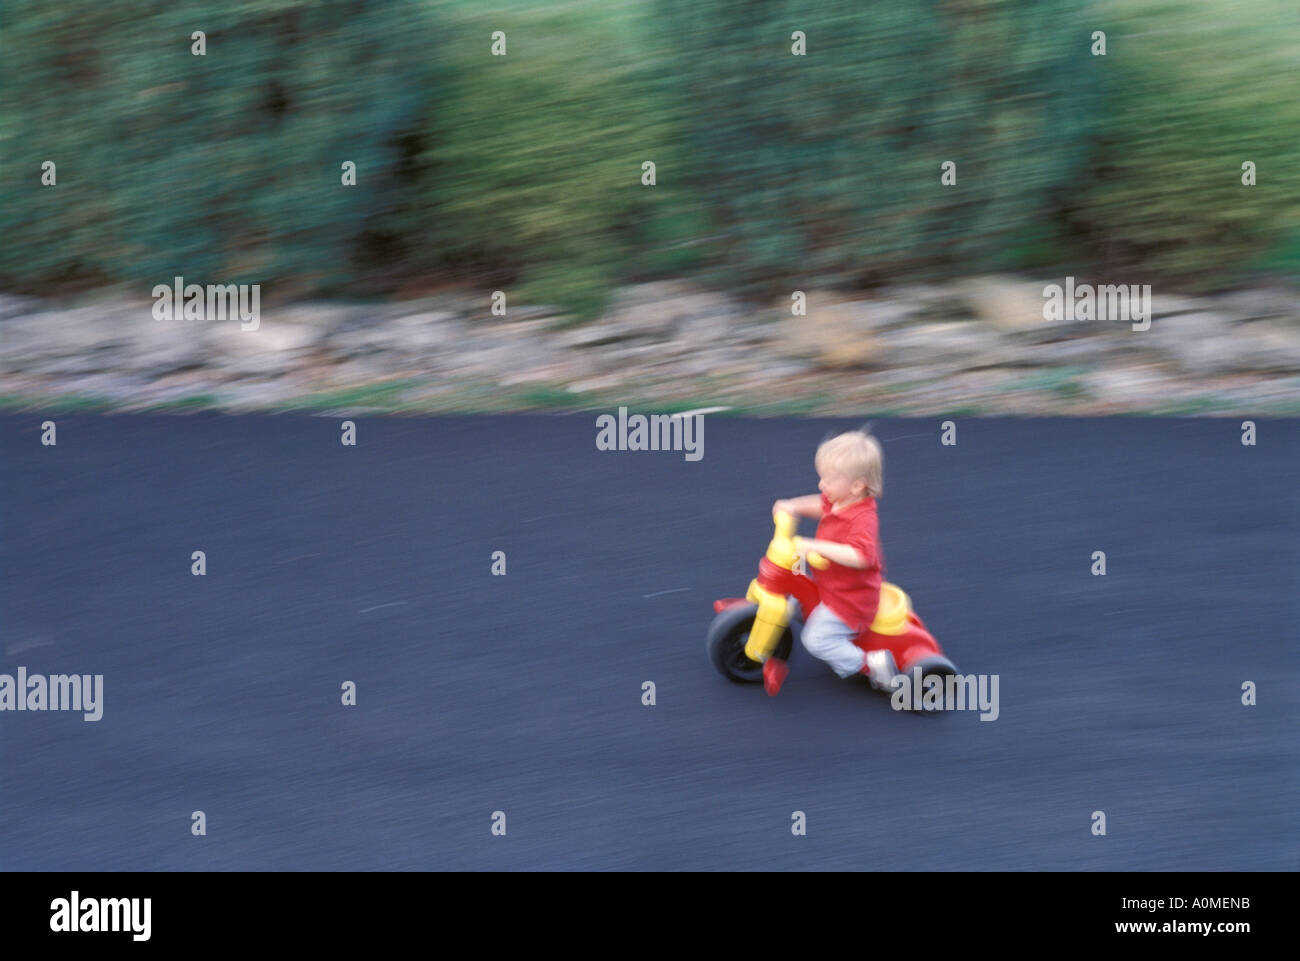 1 one young boy male blonde cute red jacket toddler 2 years old summer  tricycle movement motion blur